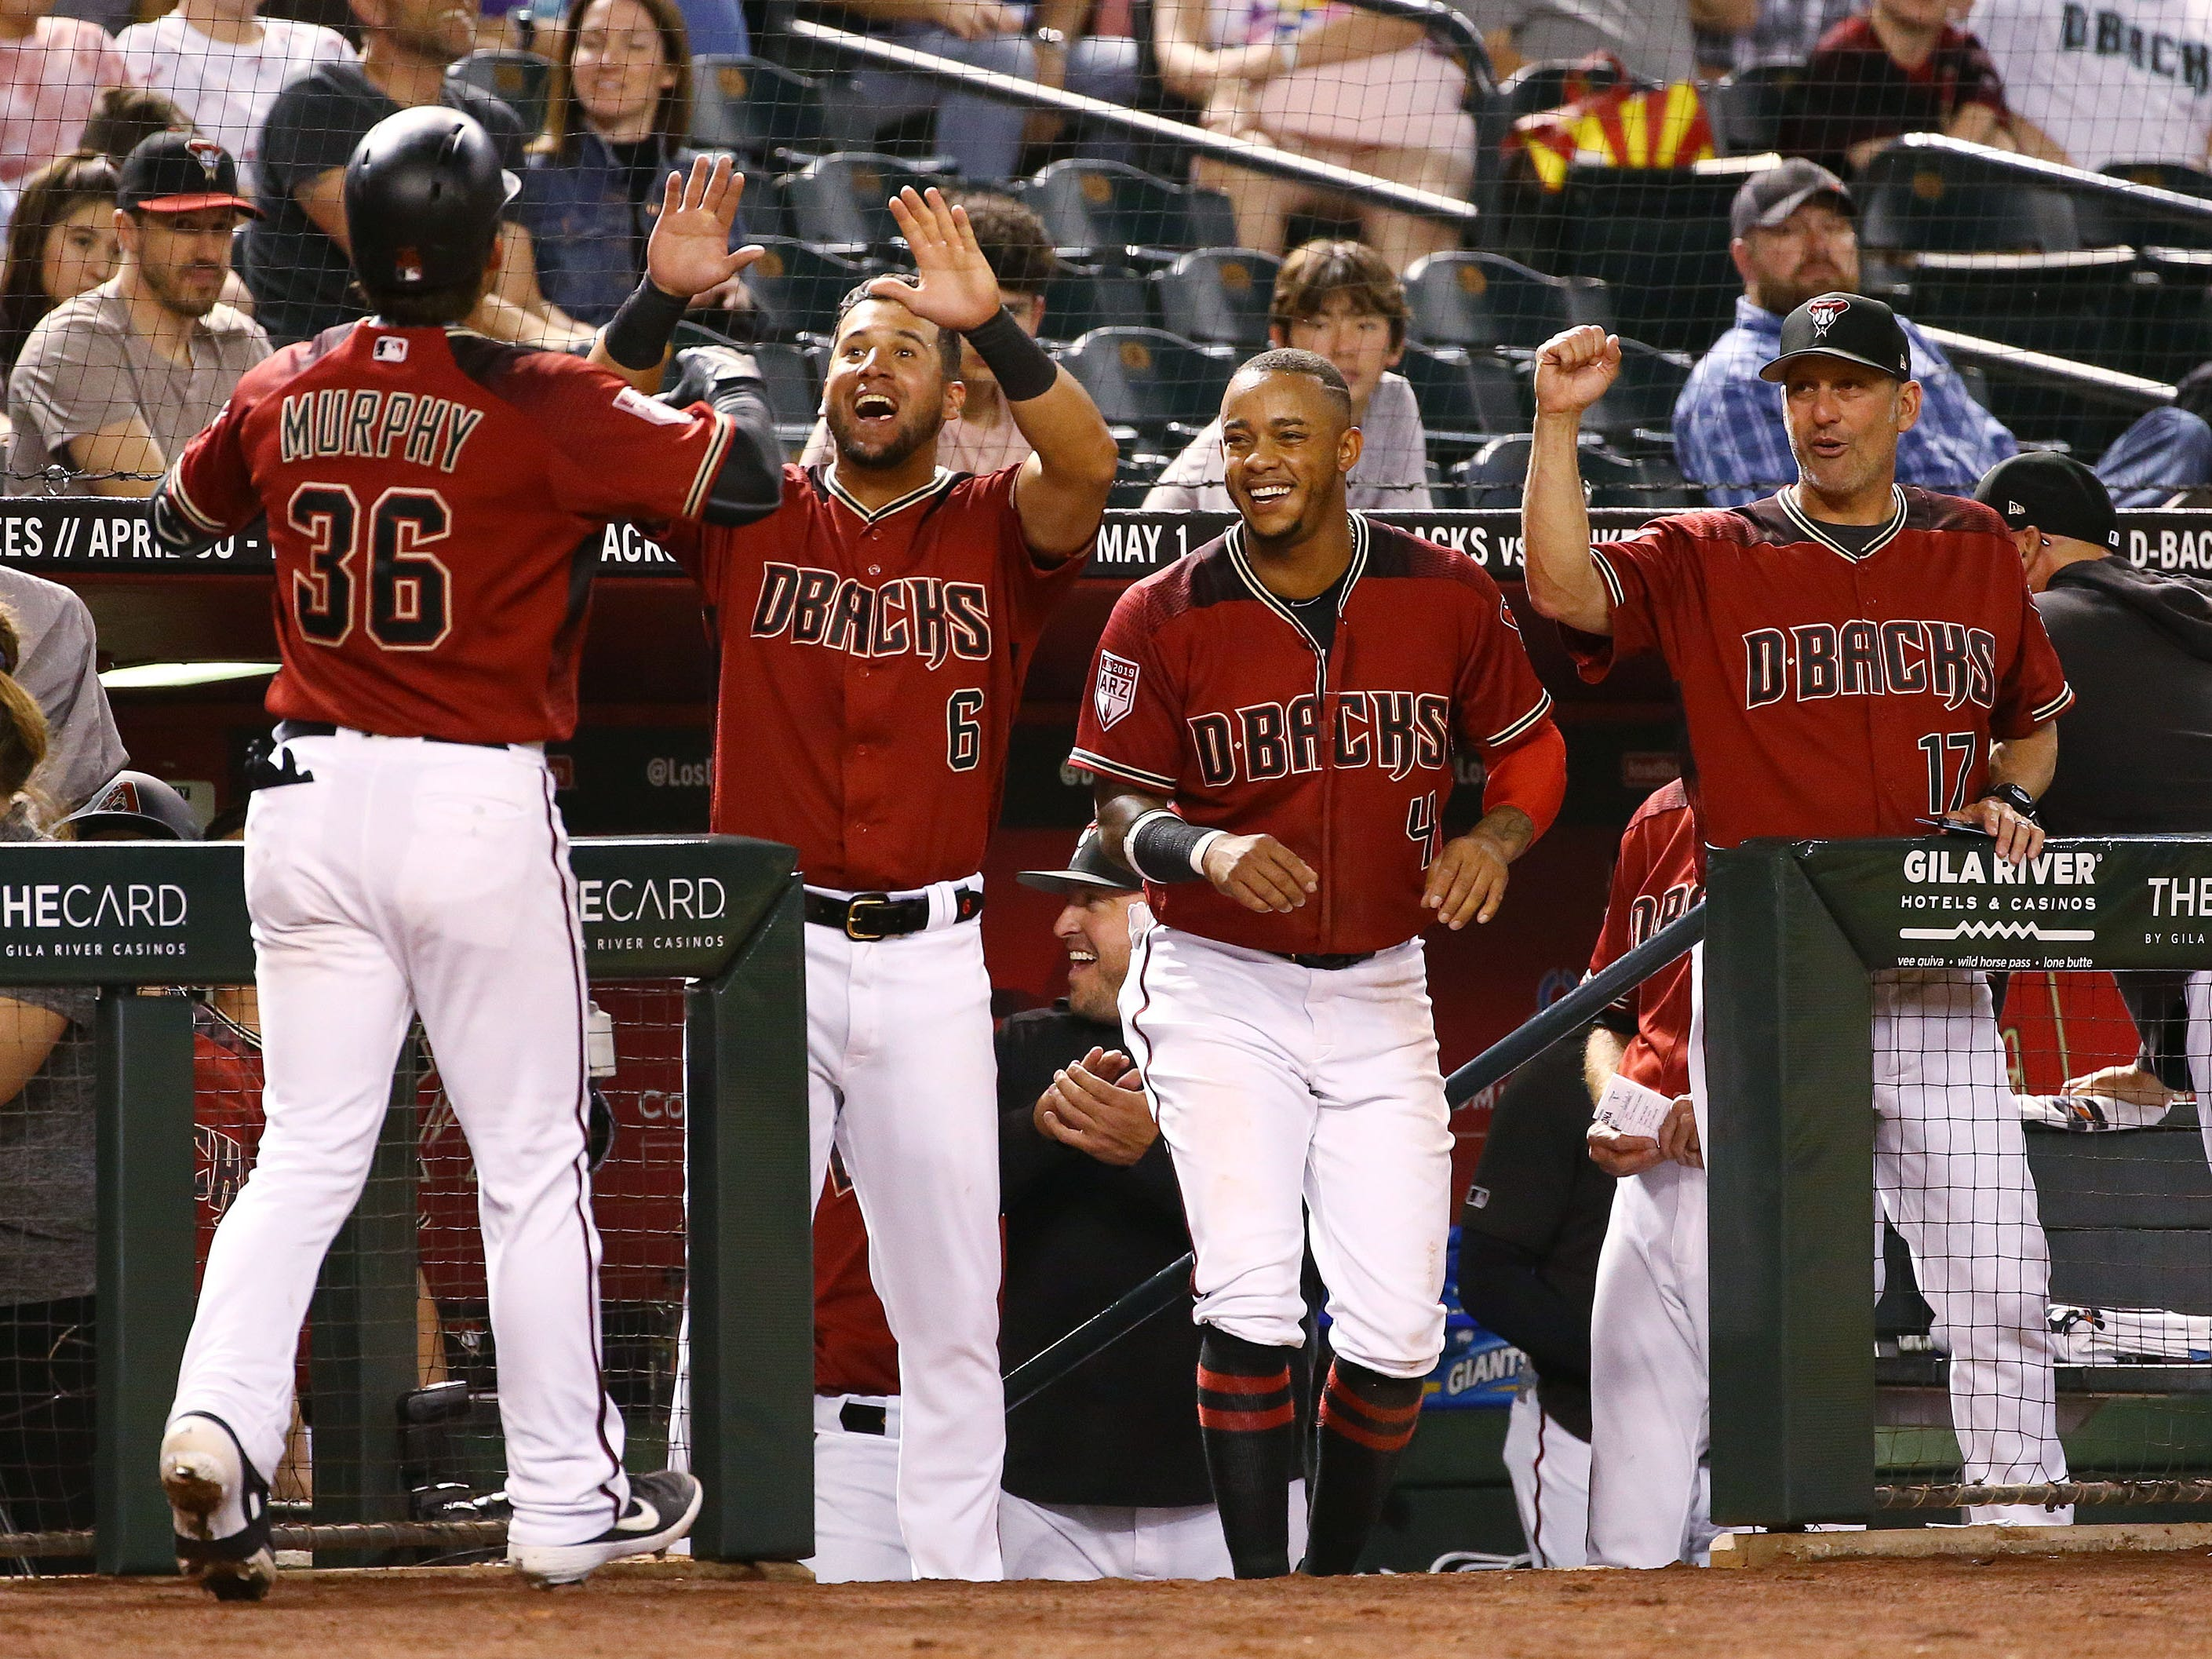 Arizona Diamondbacks John Ryan Murphy (36) celebrates with teammates David Peralta (6), Ketel Marte (4) and manager Torey Lovullo (right) after hitting as solo home run against the Chicago White Sox in the third inning during a spring training game on Mar. 25, 2019 at Chase Field in Phoenix, Ariz.